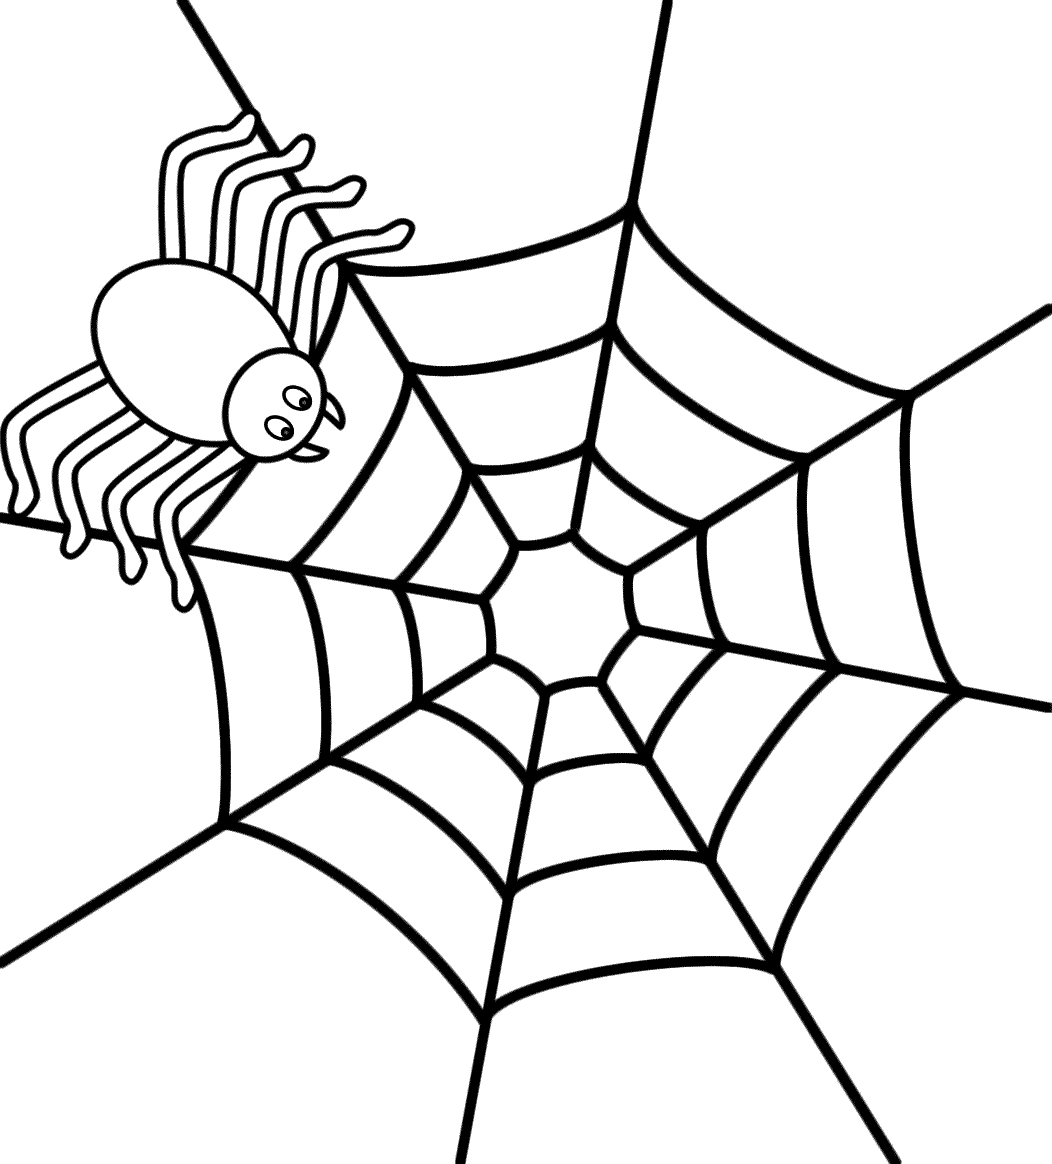 1052x1164 Spider Web Coloring Pages Awesome Spider Web Coloring Page Netart